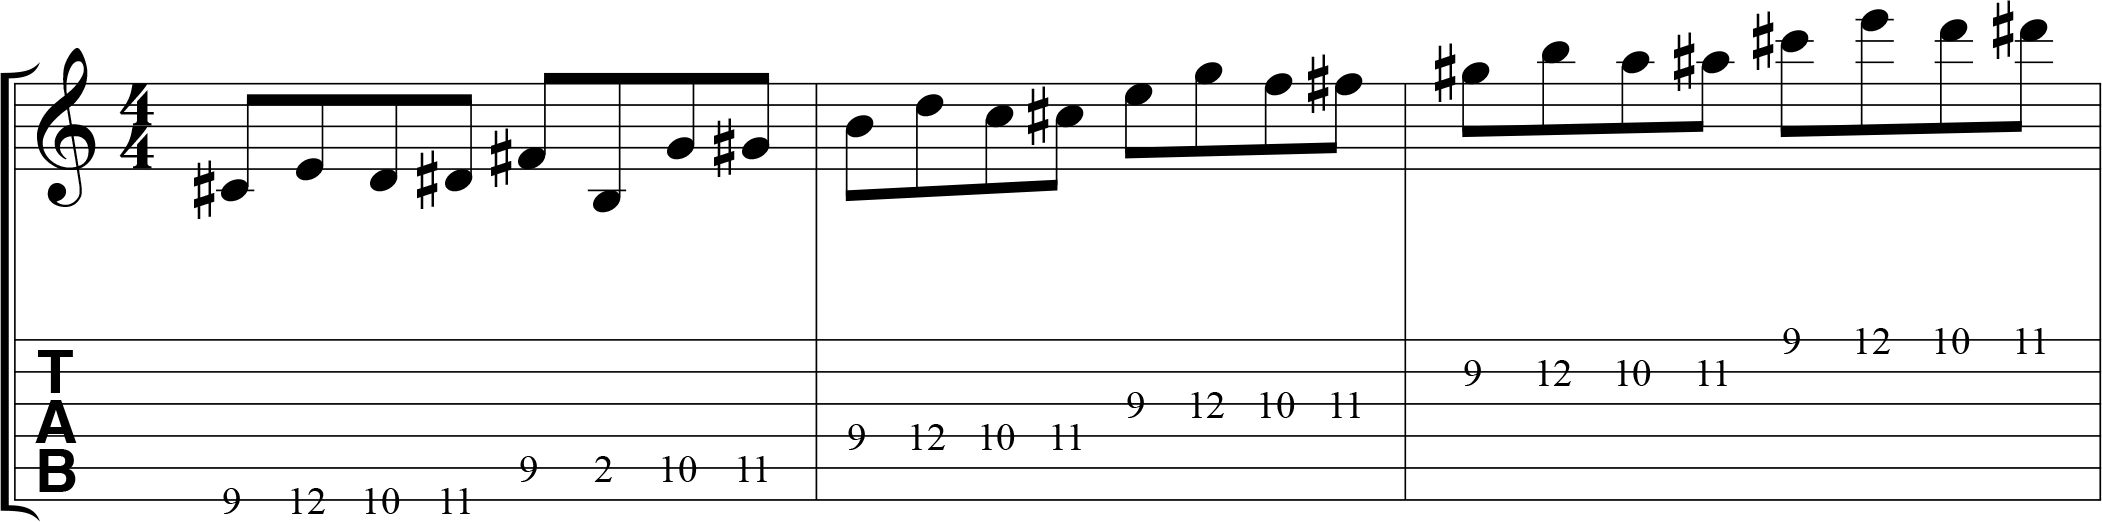 Chromatic alternate picking exercise for guitar, 1423, ascending.